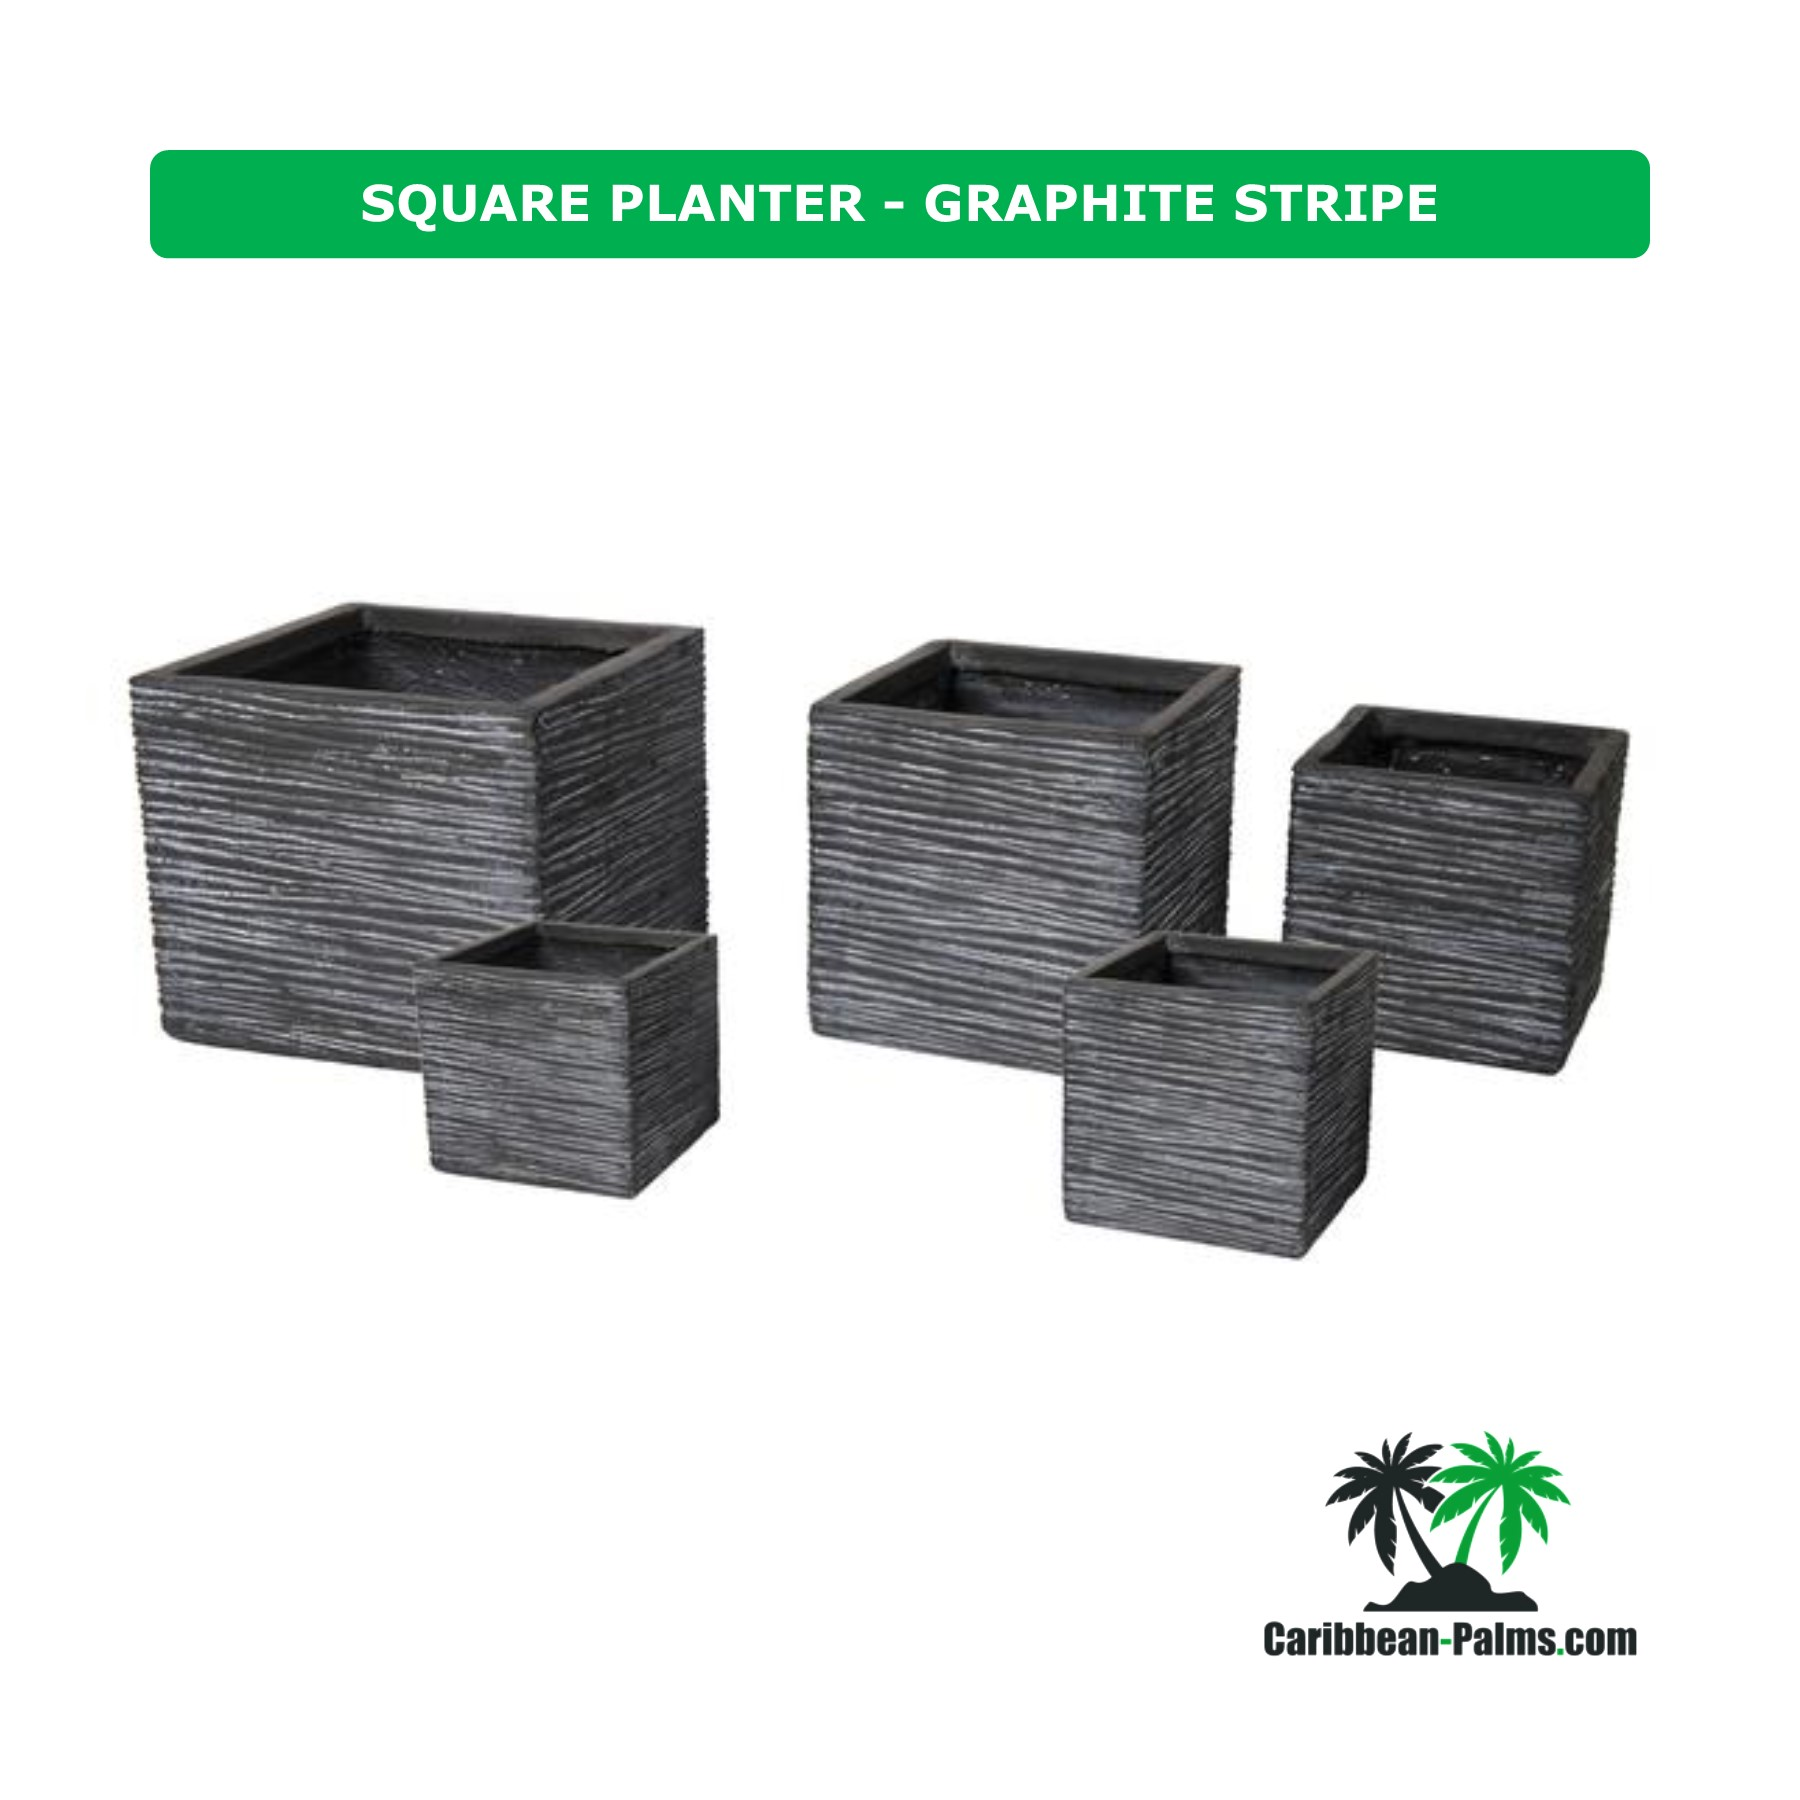 SQUARE PLANTER GRAPHITE STRIPE